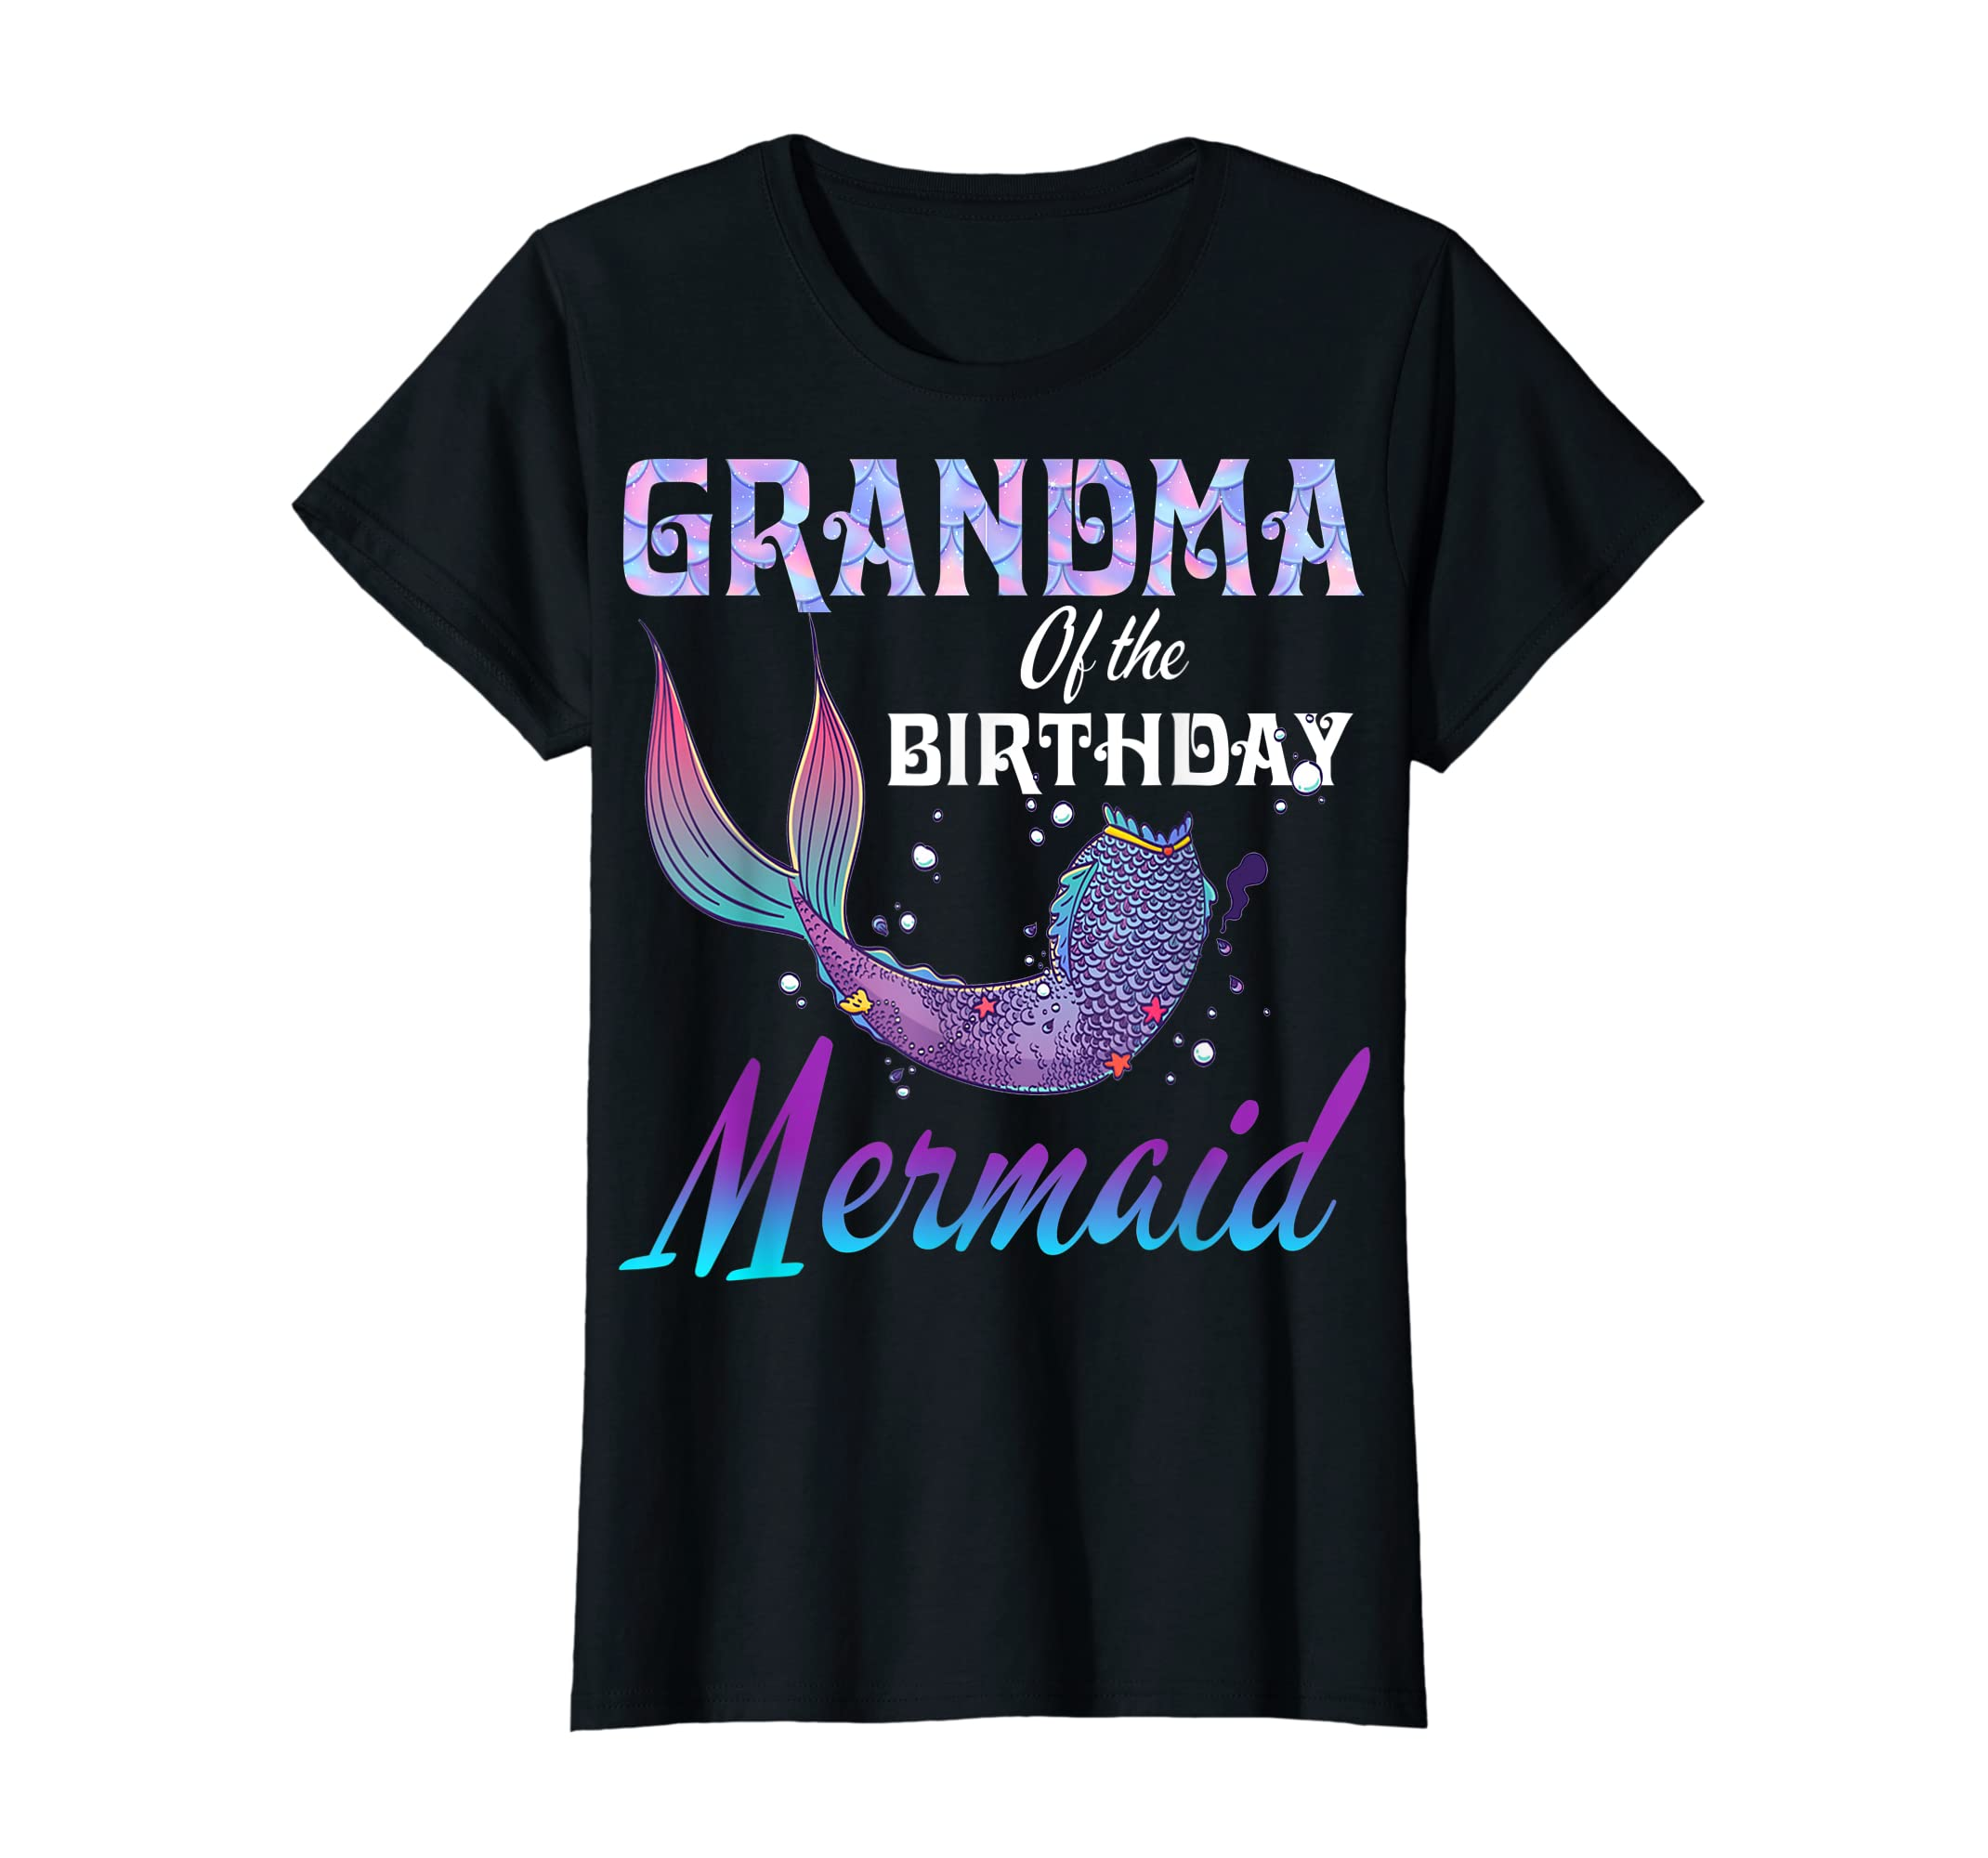 Grandma of The Birthday Mermaid Shirt Matching Party Outfits-Women's T-Shirt-Black